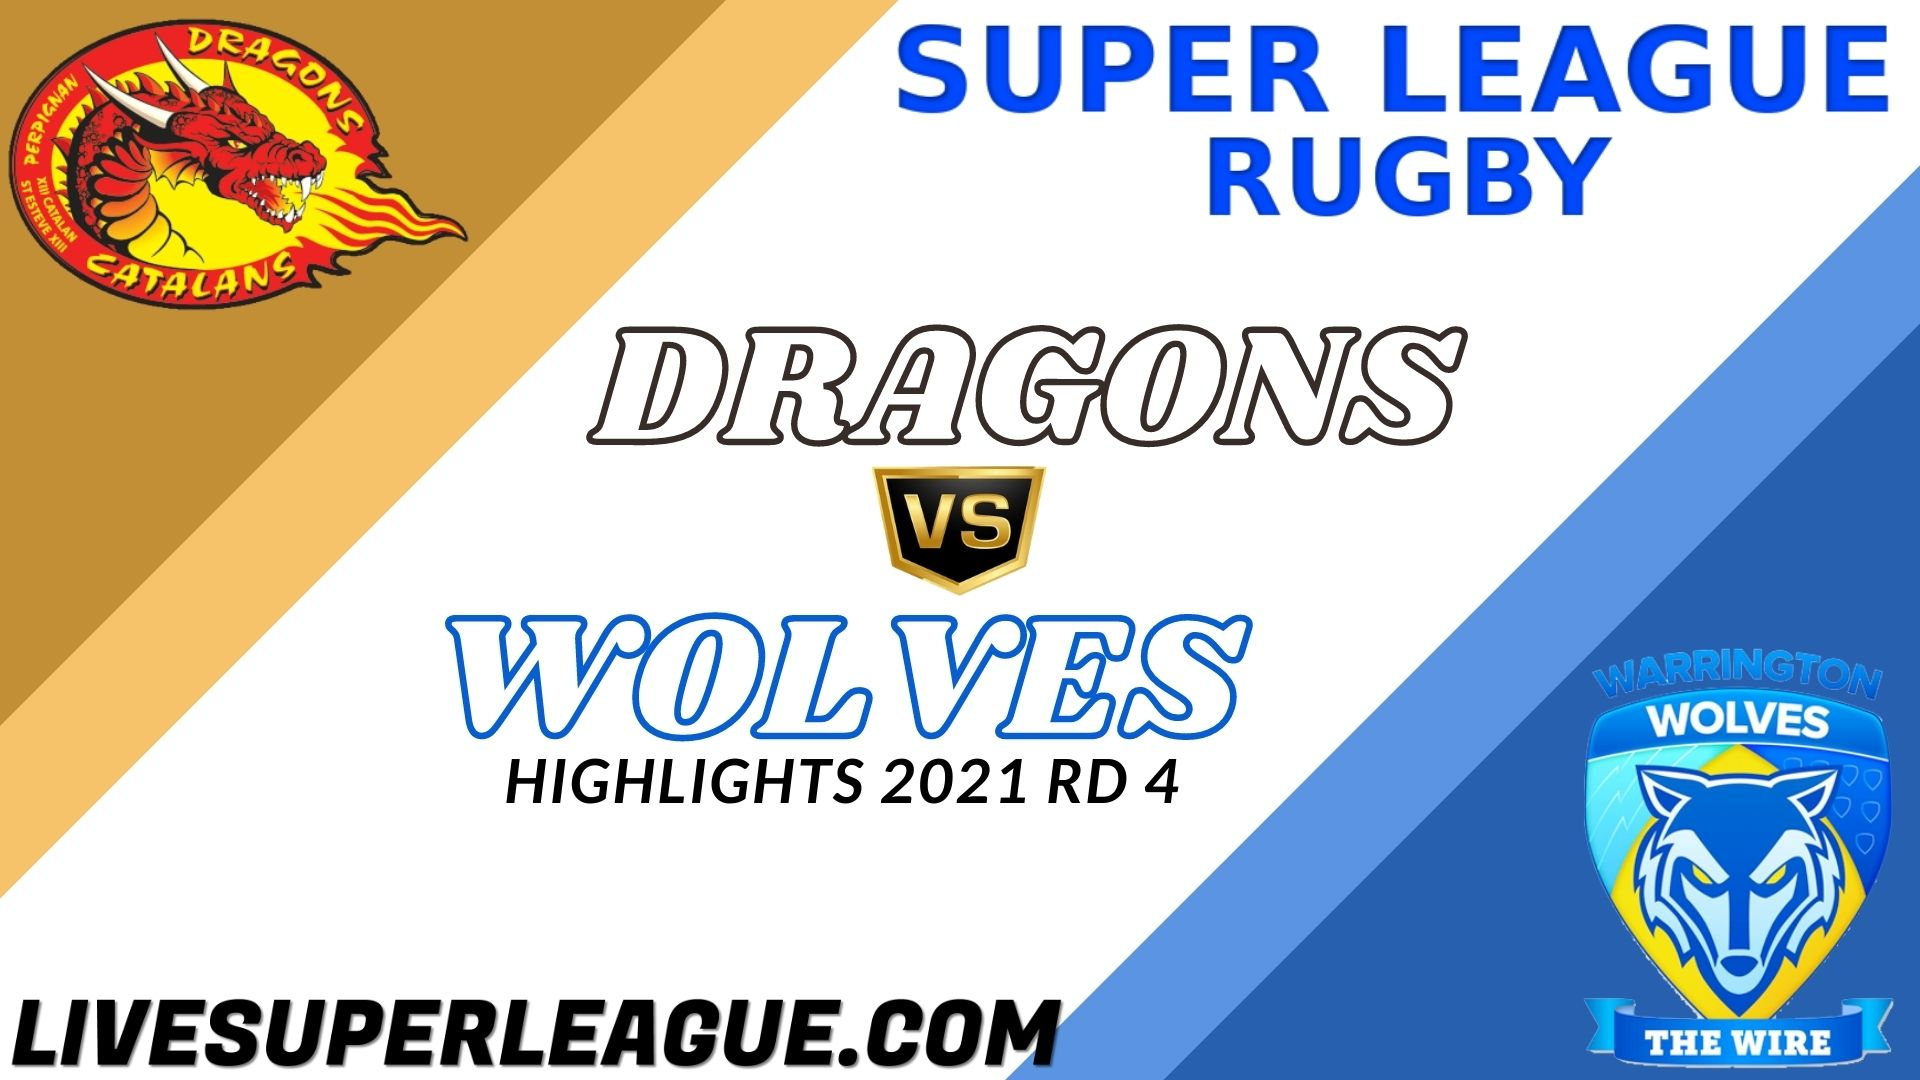 Dragons Vs Wolves Highlights 2021